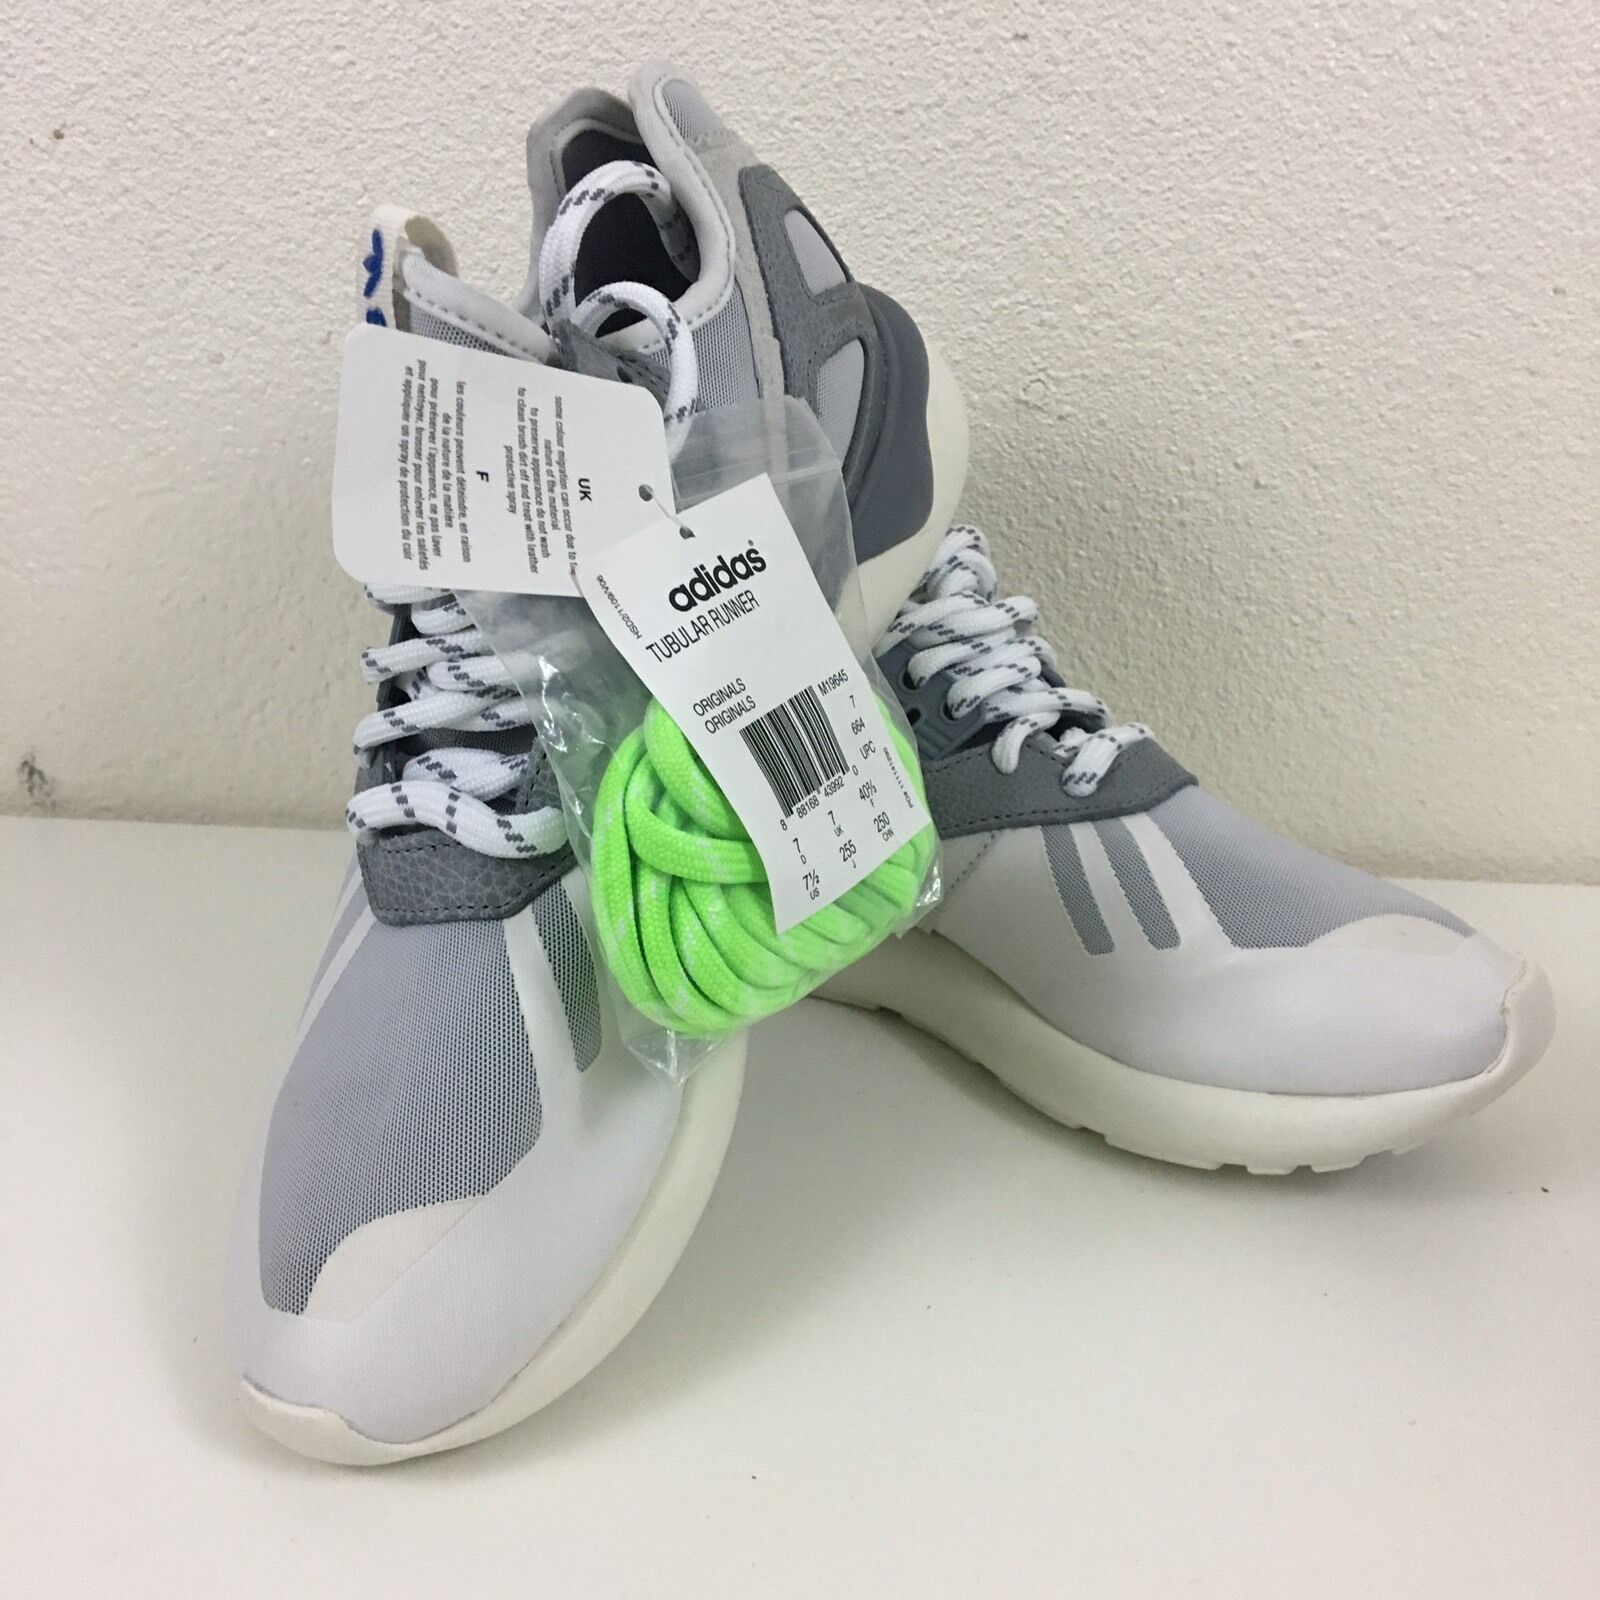 Adidas Runner Blanco Onix gris m19645 tubular hombre tamaño 7,5 m19645 gris MSRP price reduction 5c1b72